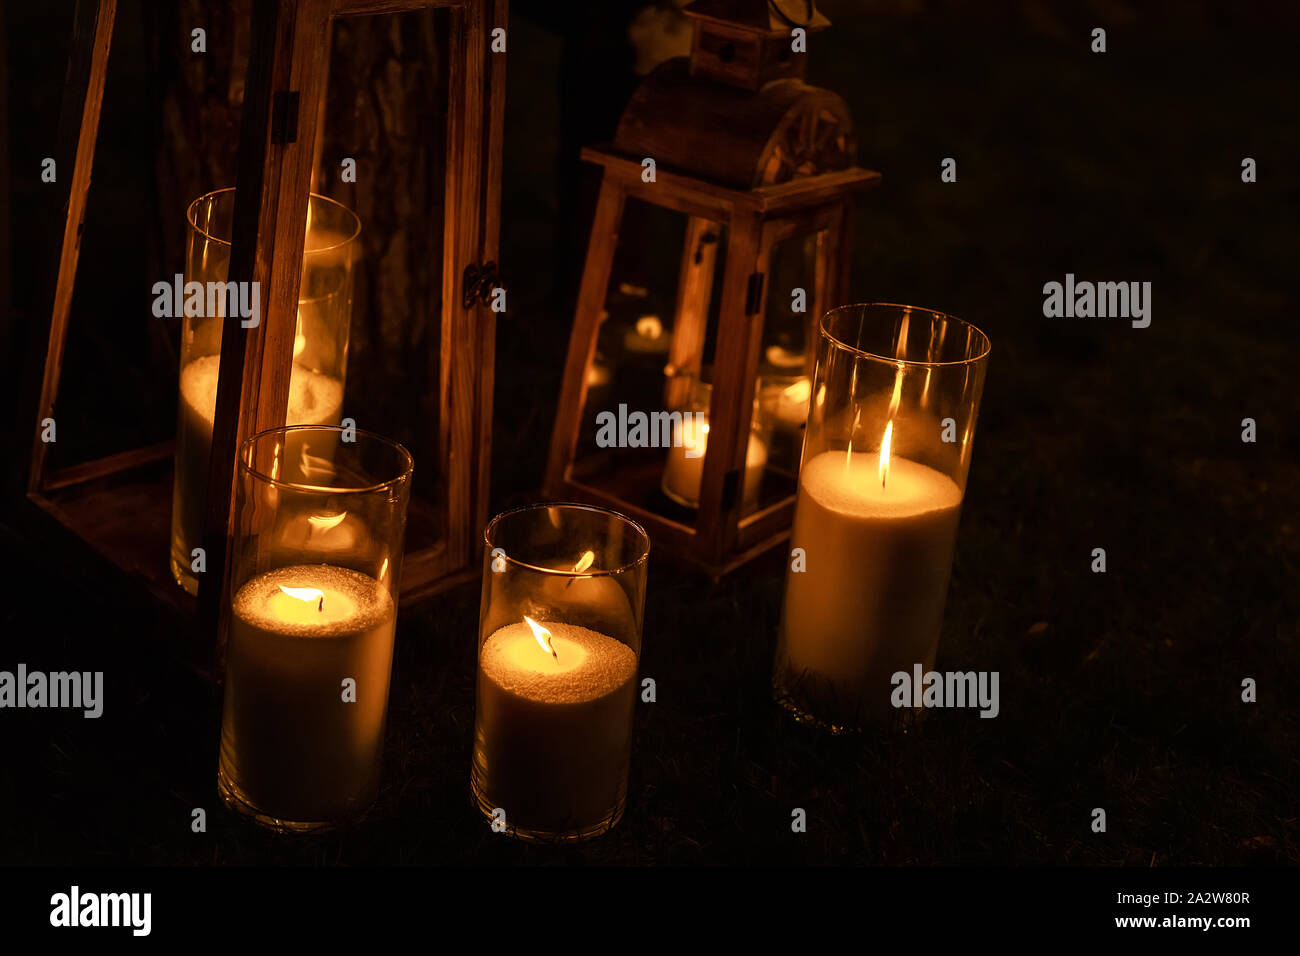 Many burning candles in glass and wooden lanterns on dark ground outdoor at night. Romantic party area. Diwali fire holiday Stock Photo